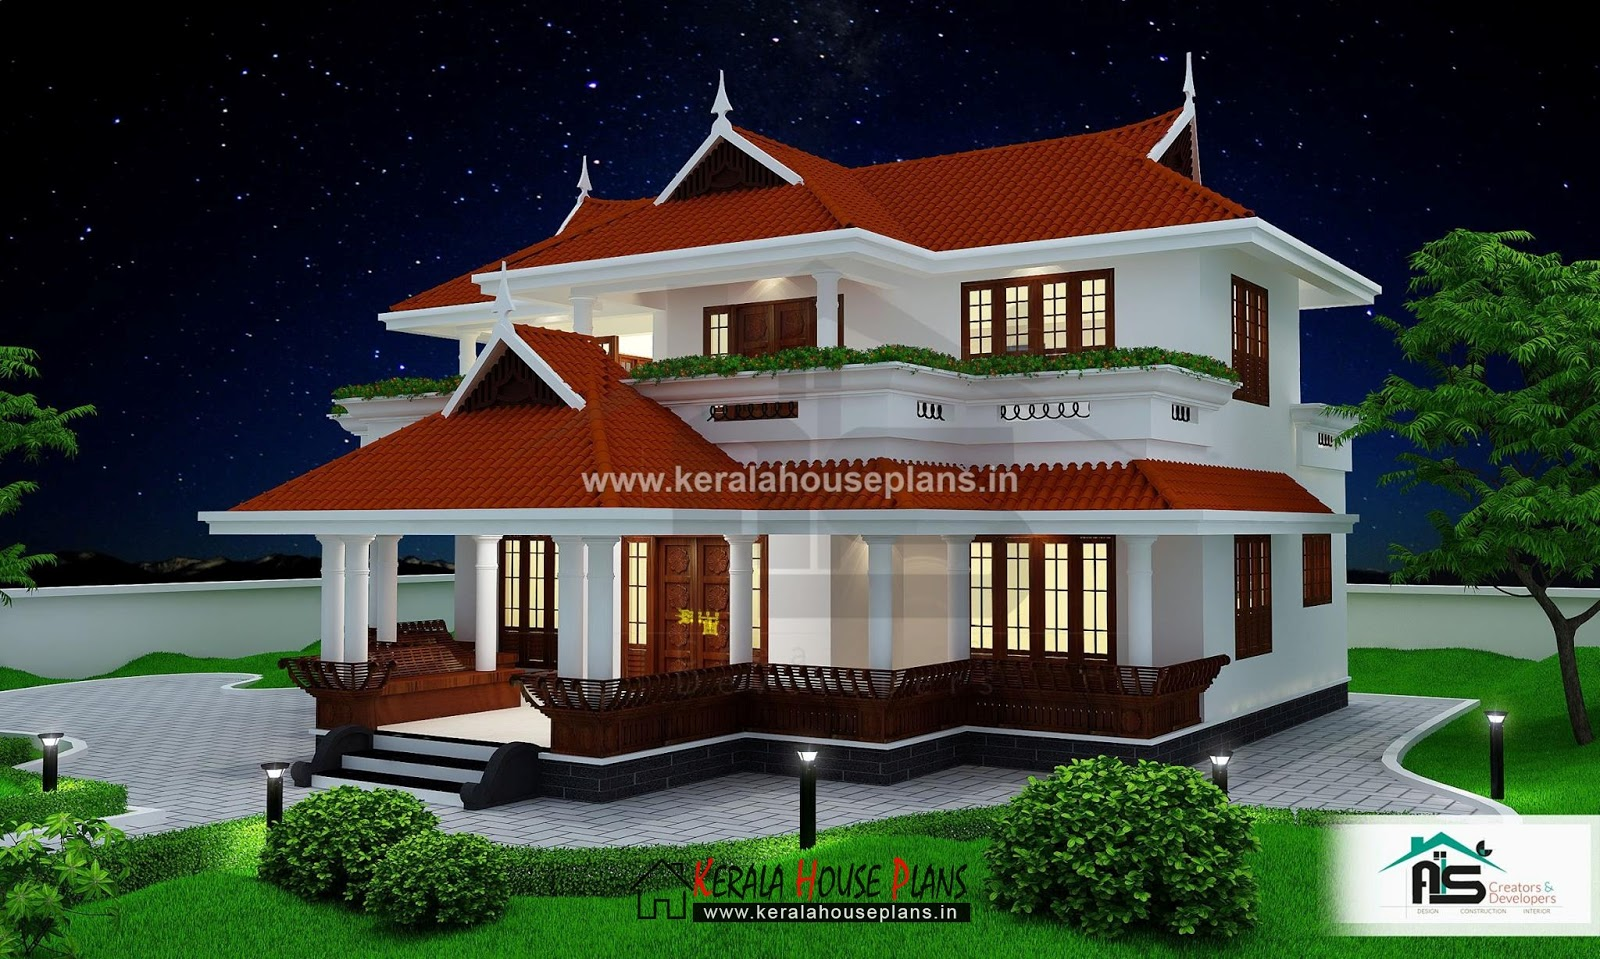 Veedu plan kerala traditional style home kerala house for Home plans designs kerala